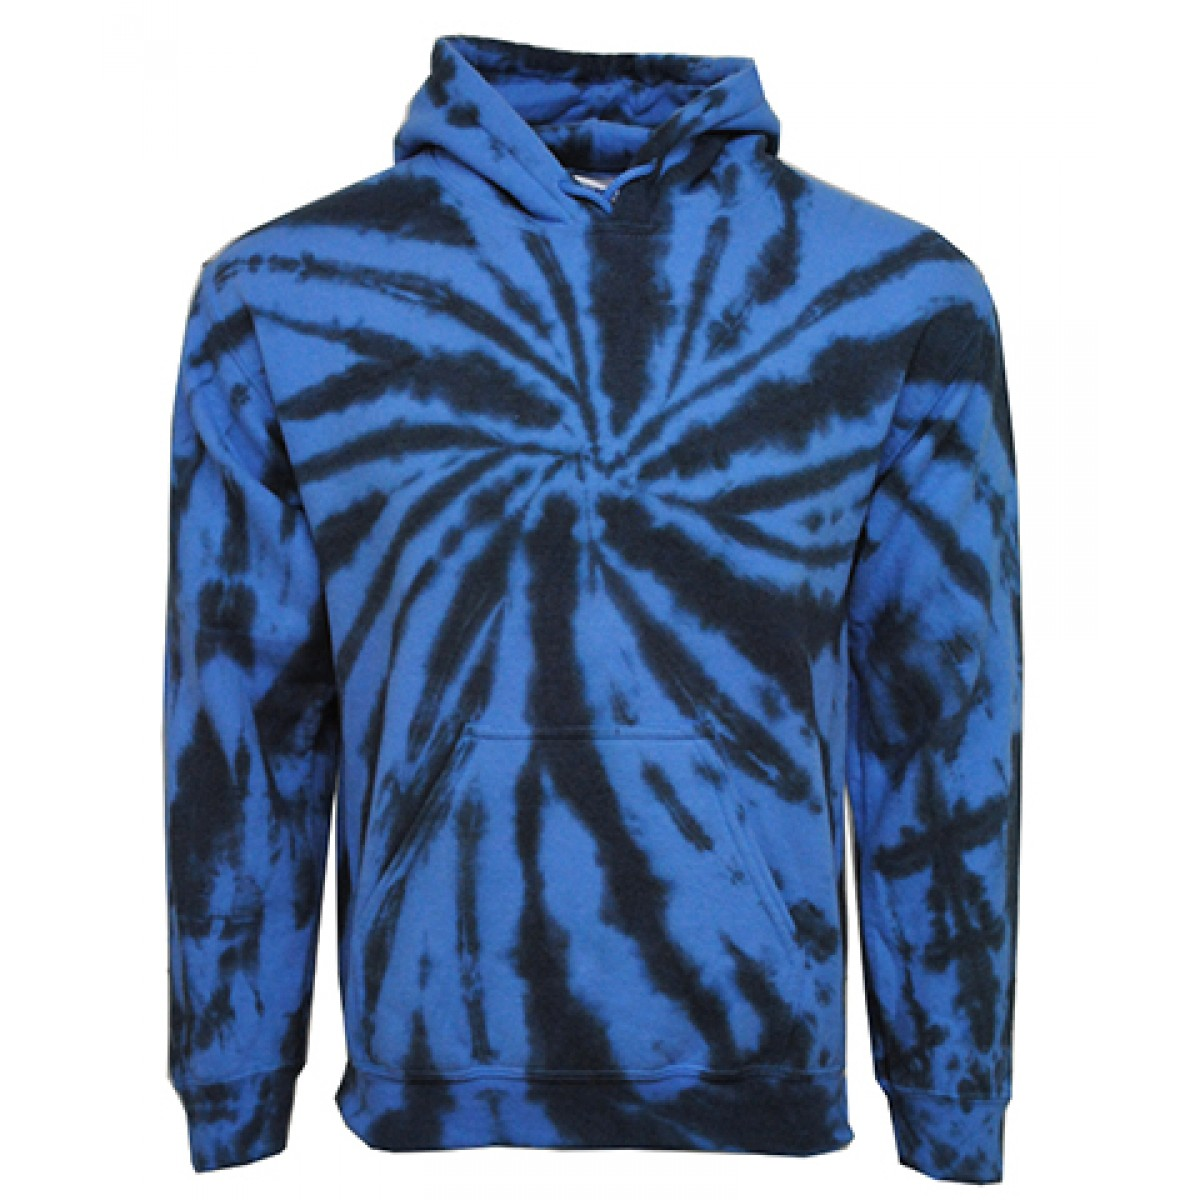 Tie die Hooded Sweatshirts  50/50 Heavy Blend